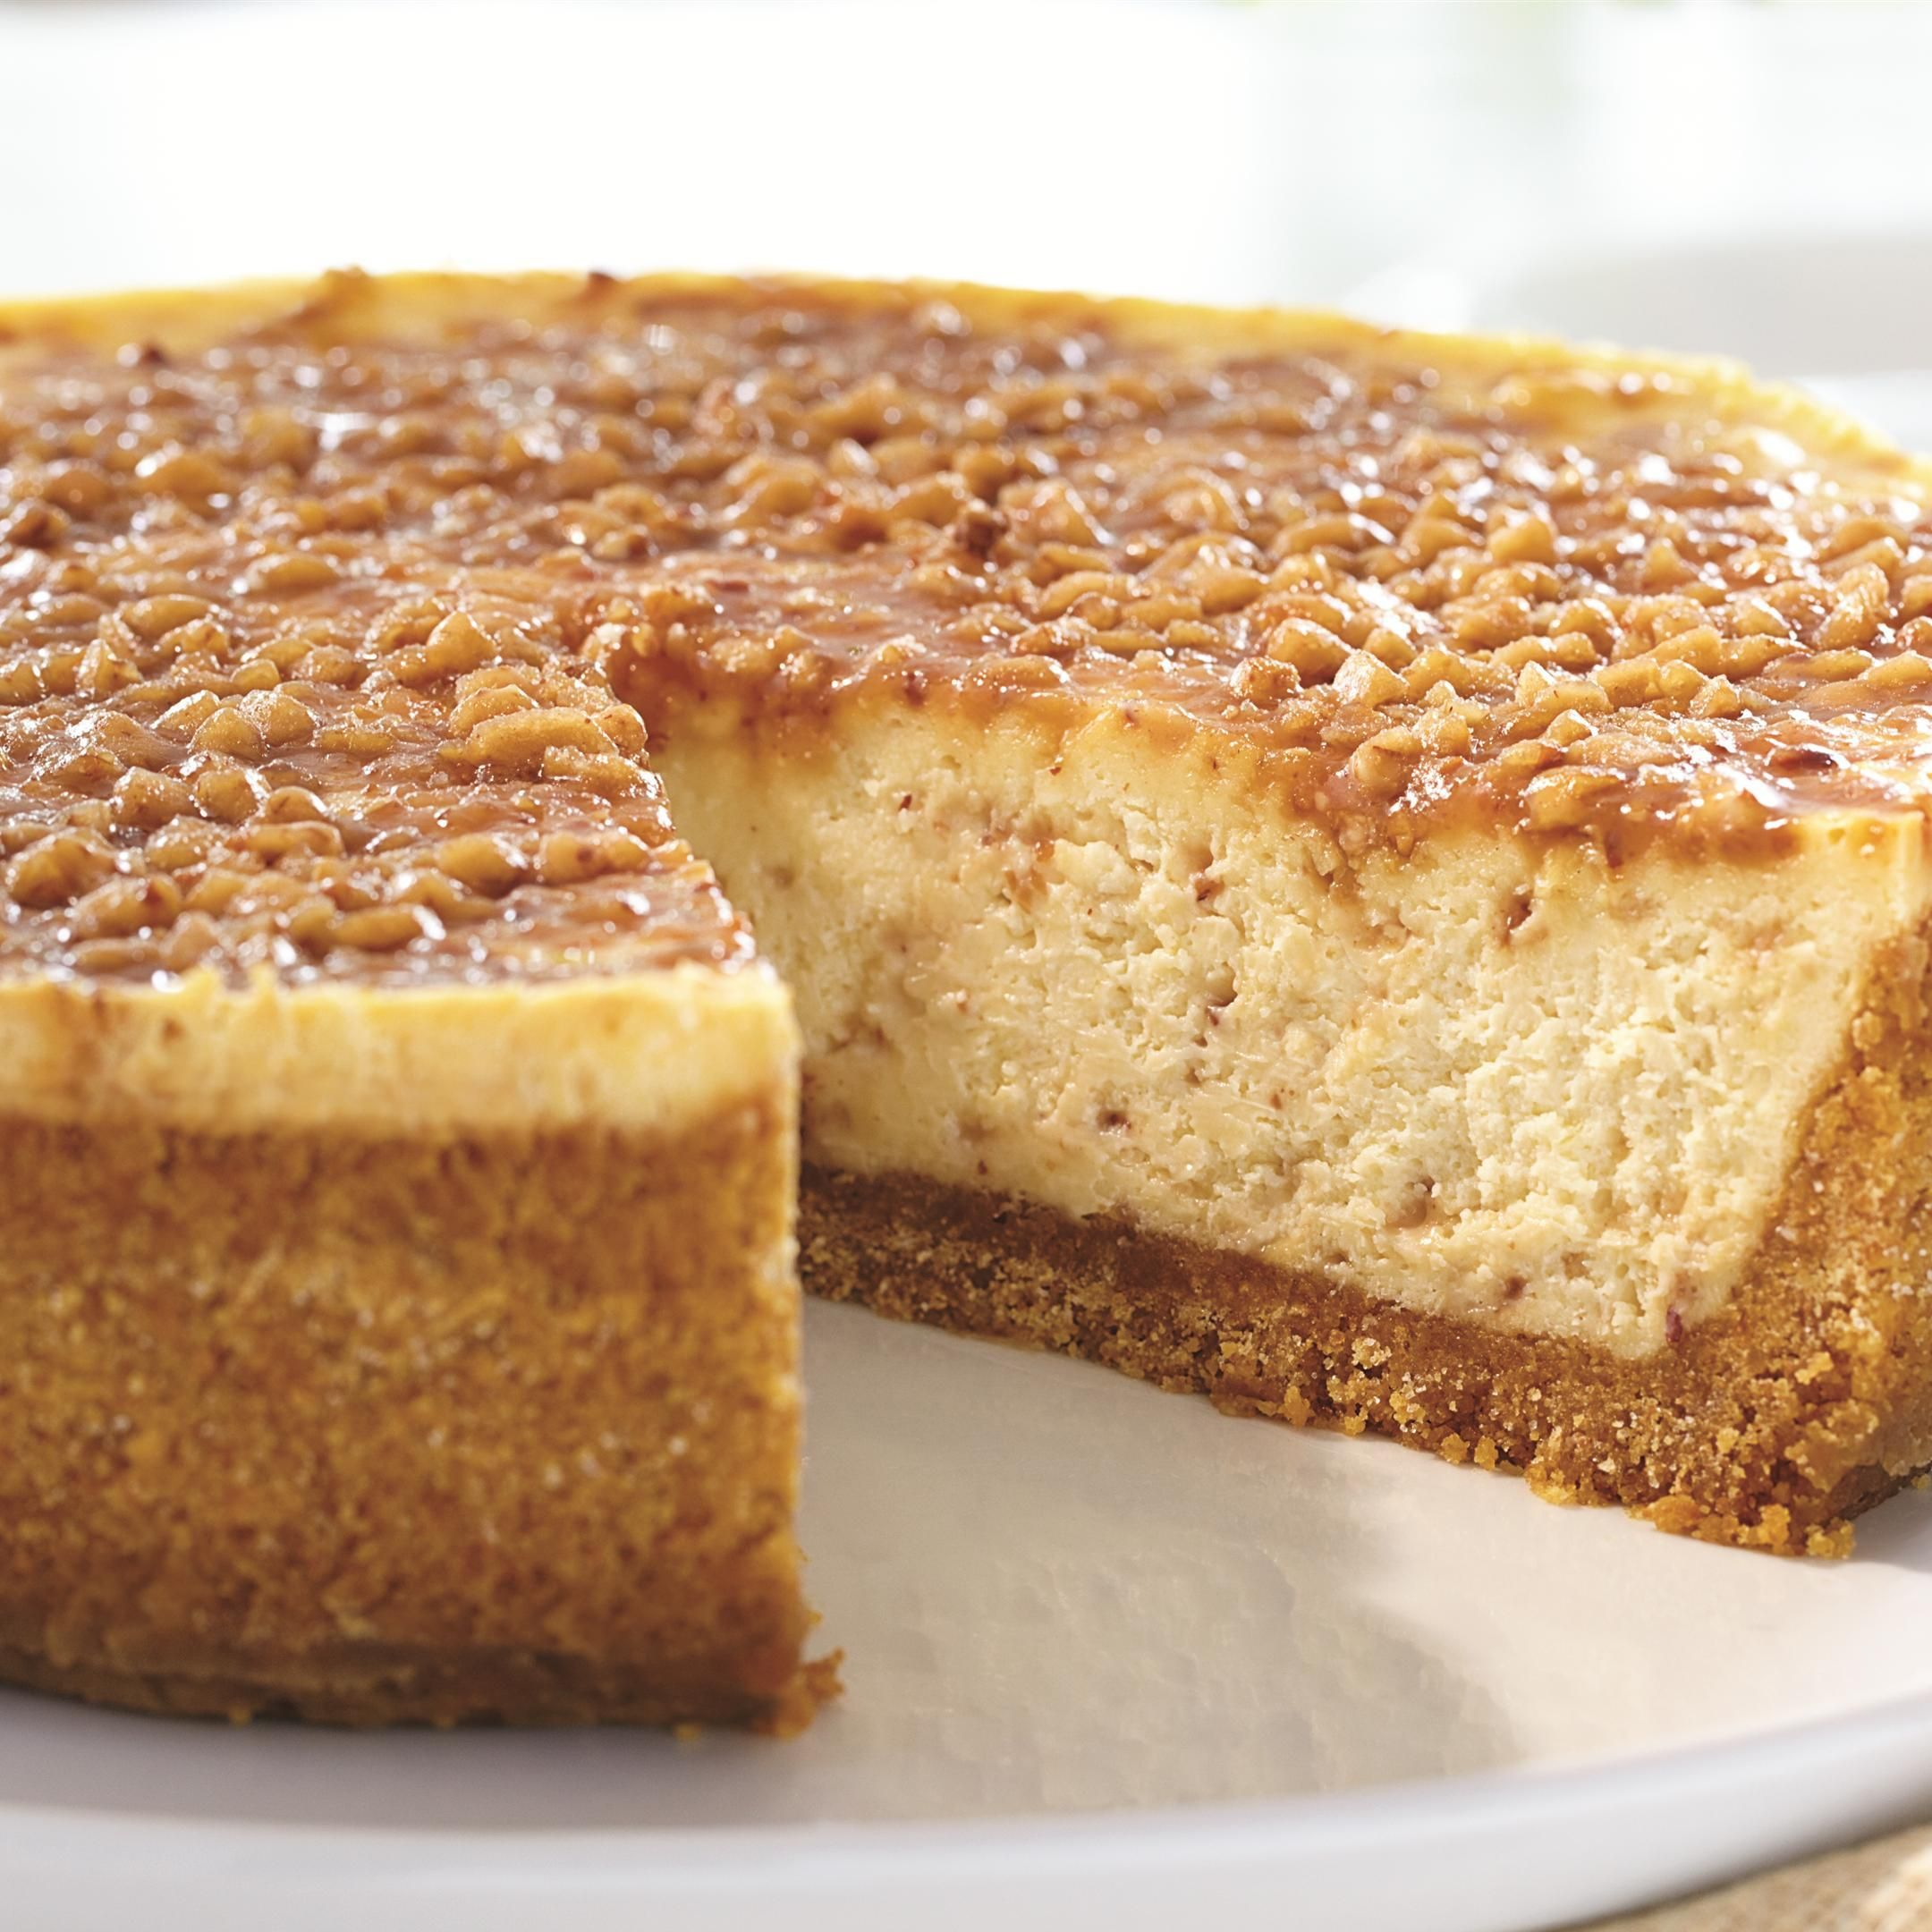 English Toffee Cheesecake From Smucker S Recipe Toffee Cheesecake Recipes Cheesecake Recipes Toffee Cheesecake